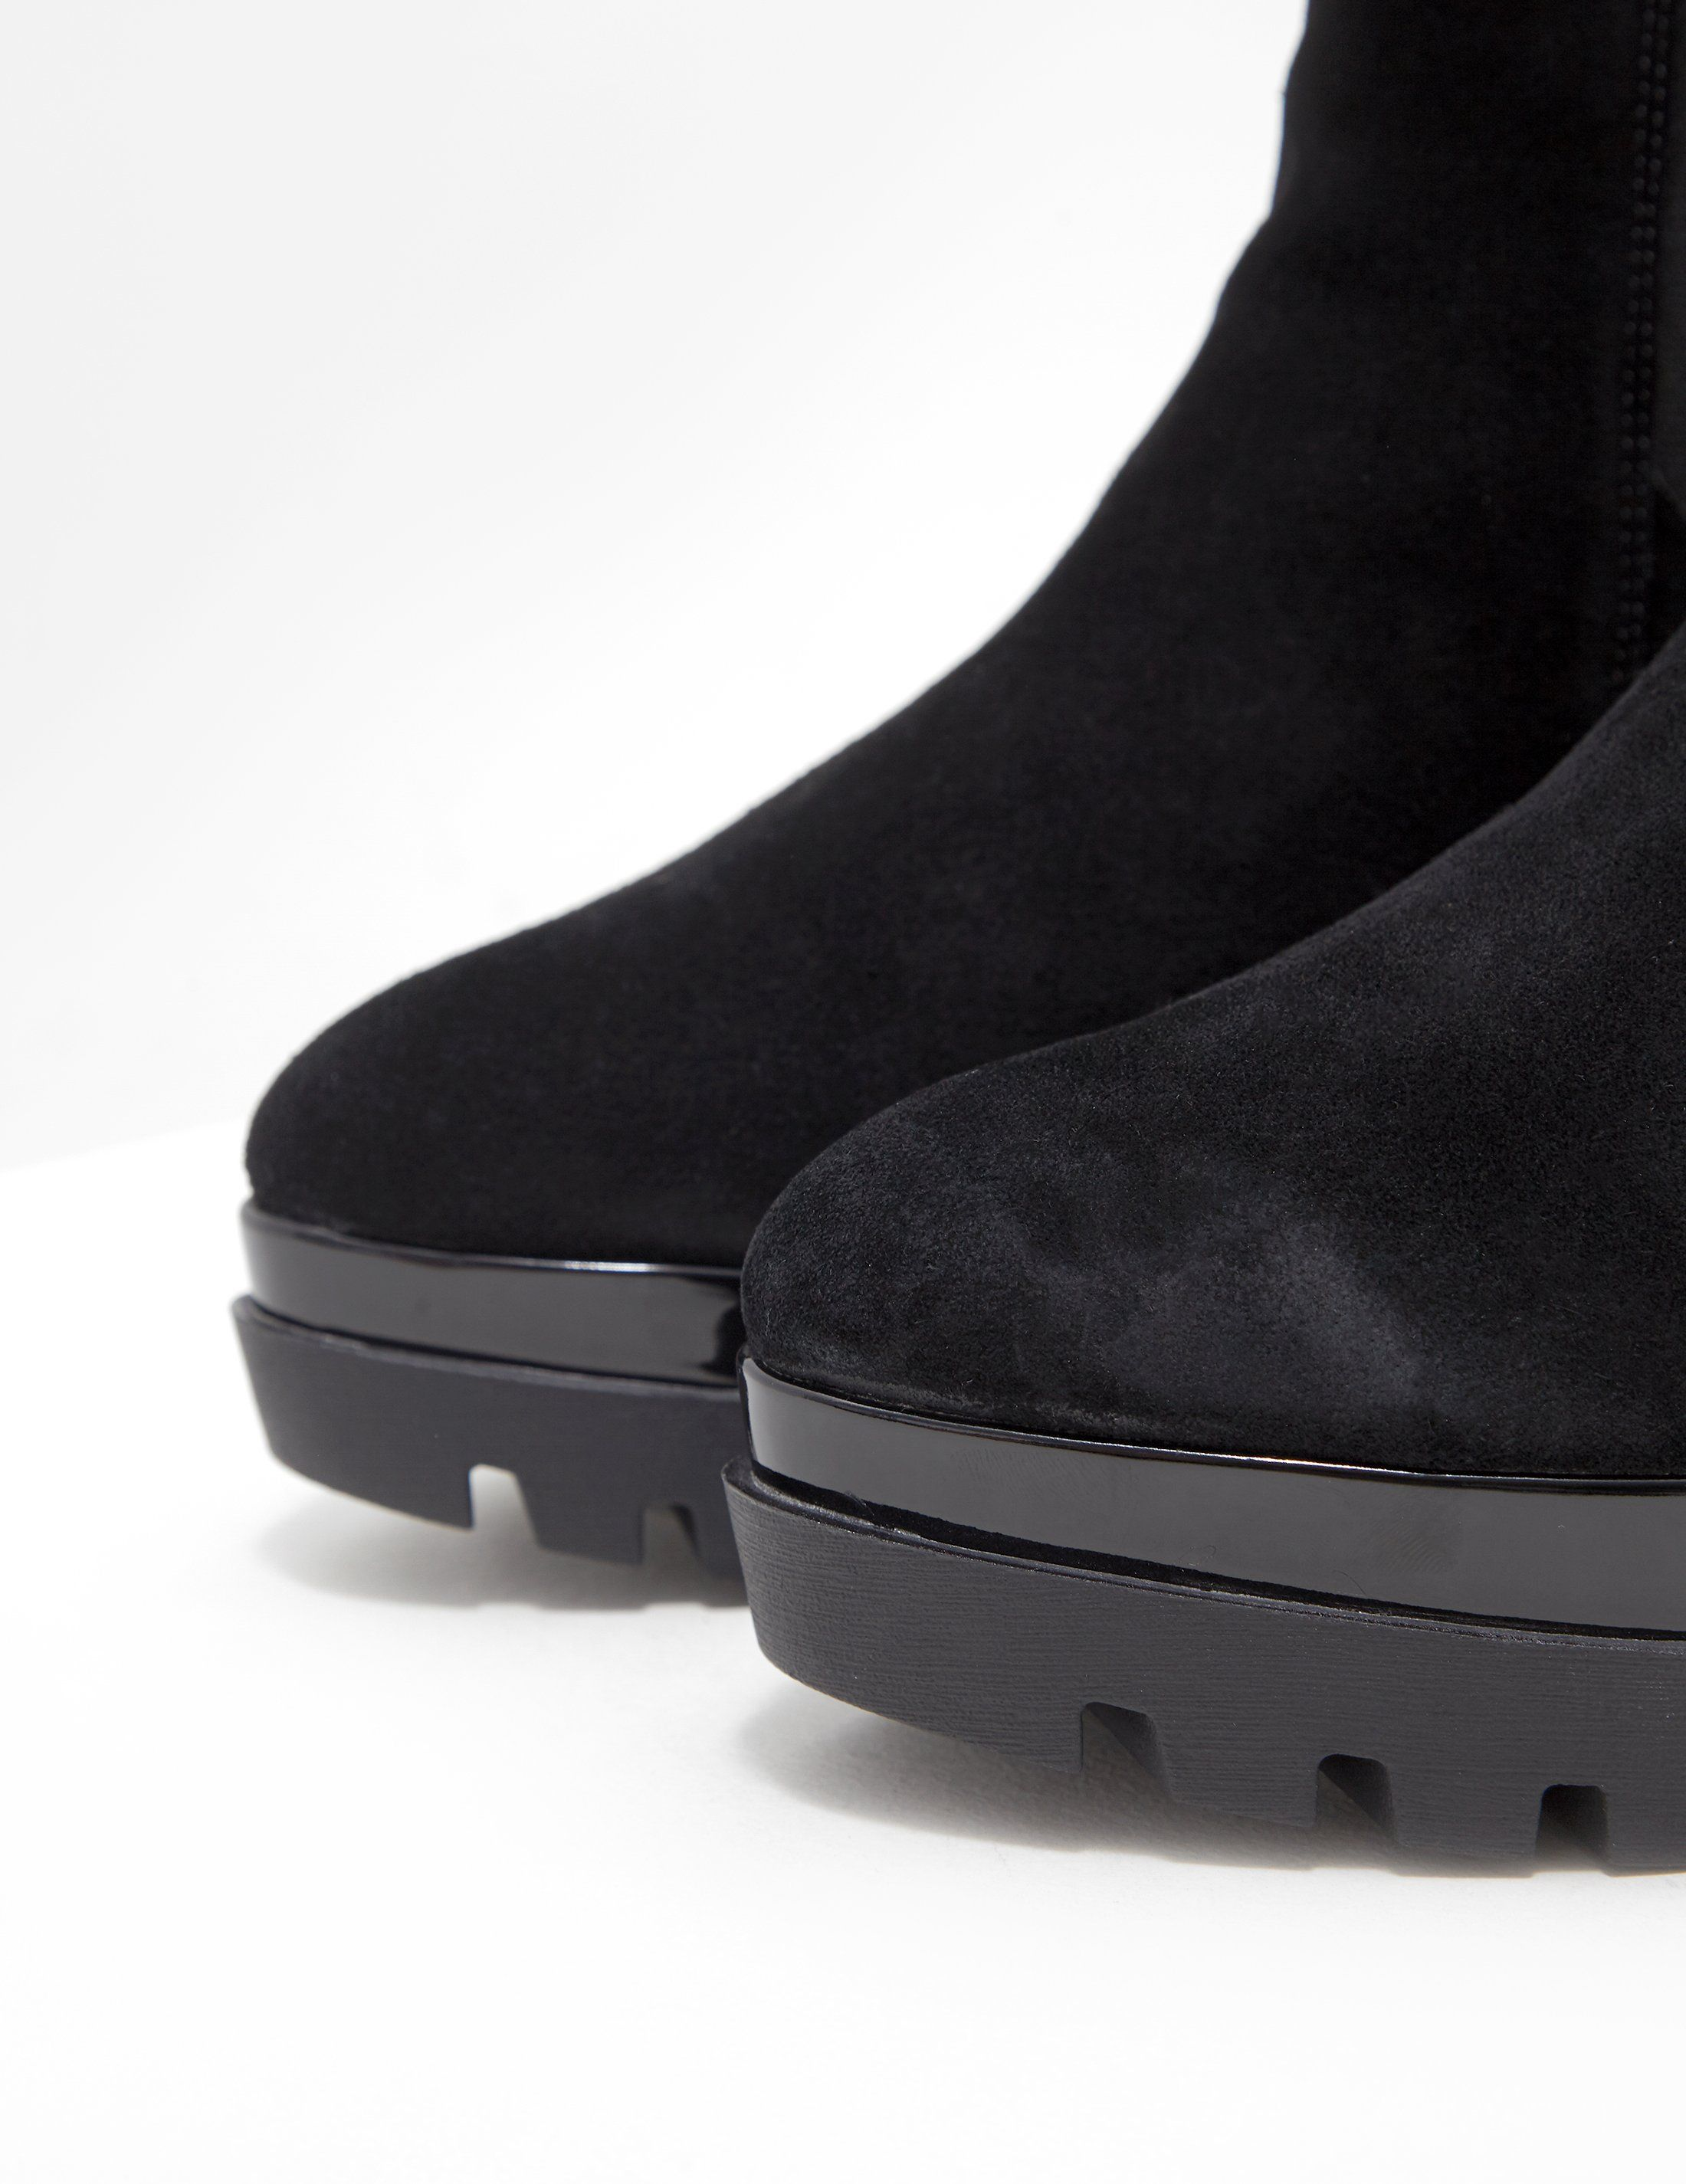 DKNY Bax Wedge Boots - Online Exclusive